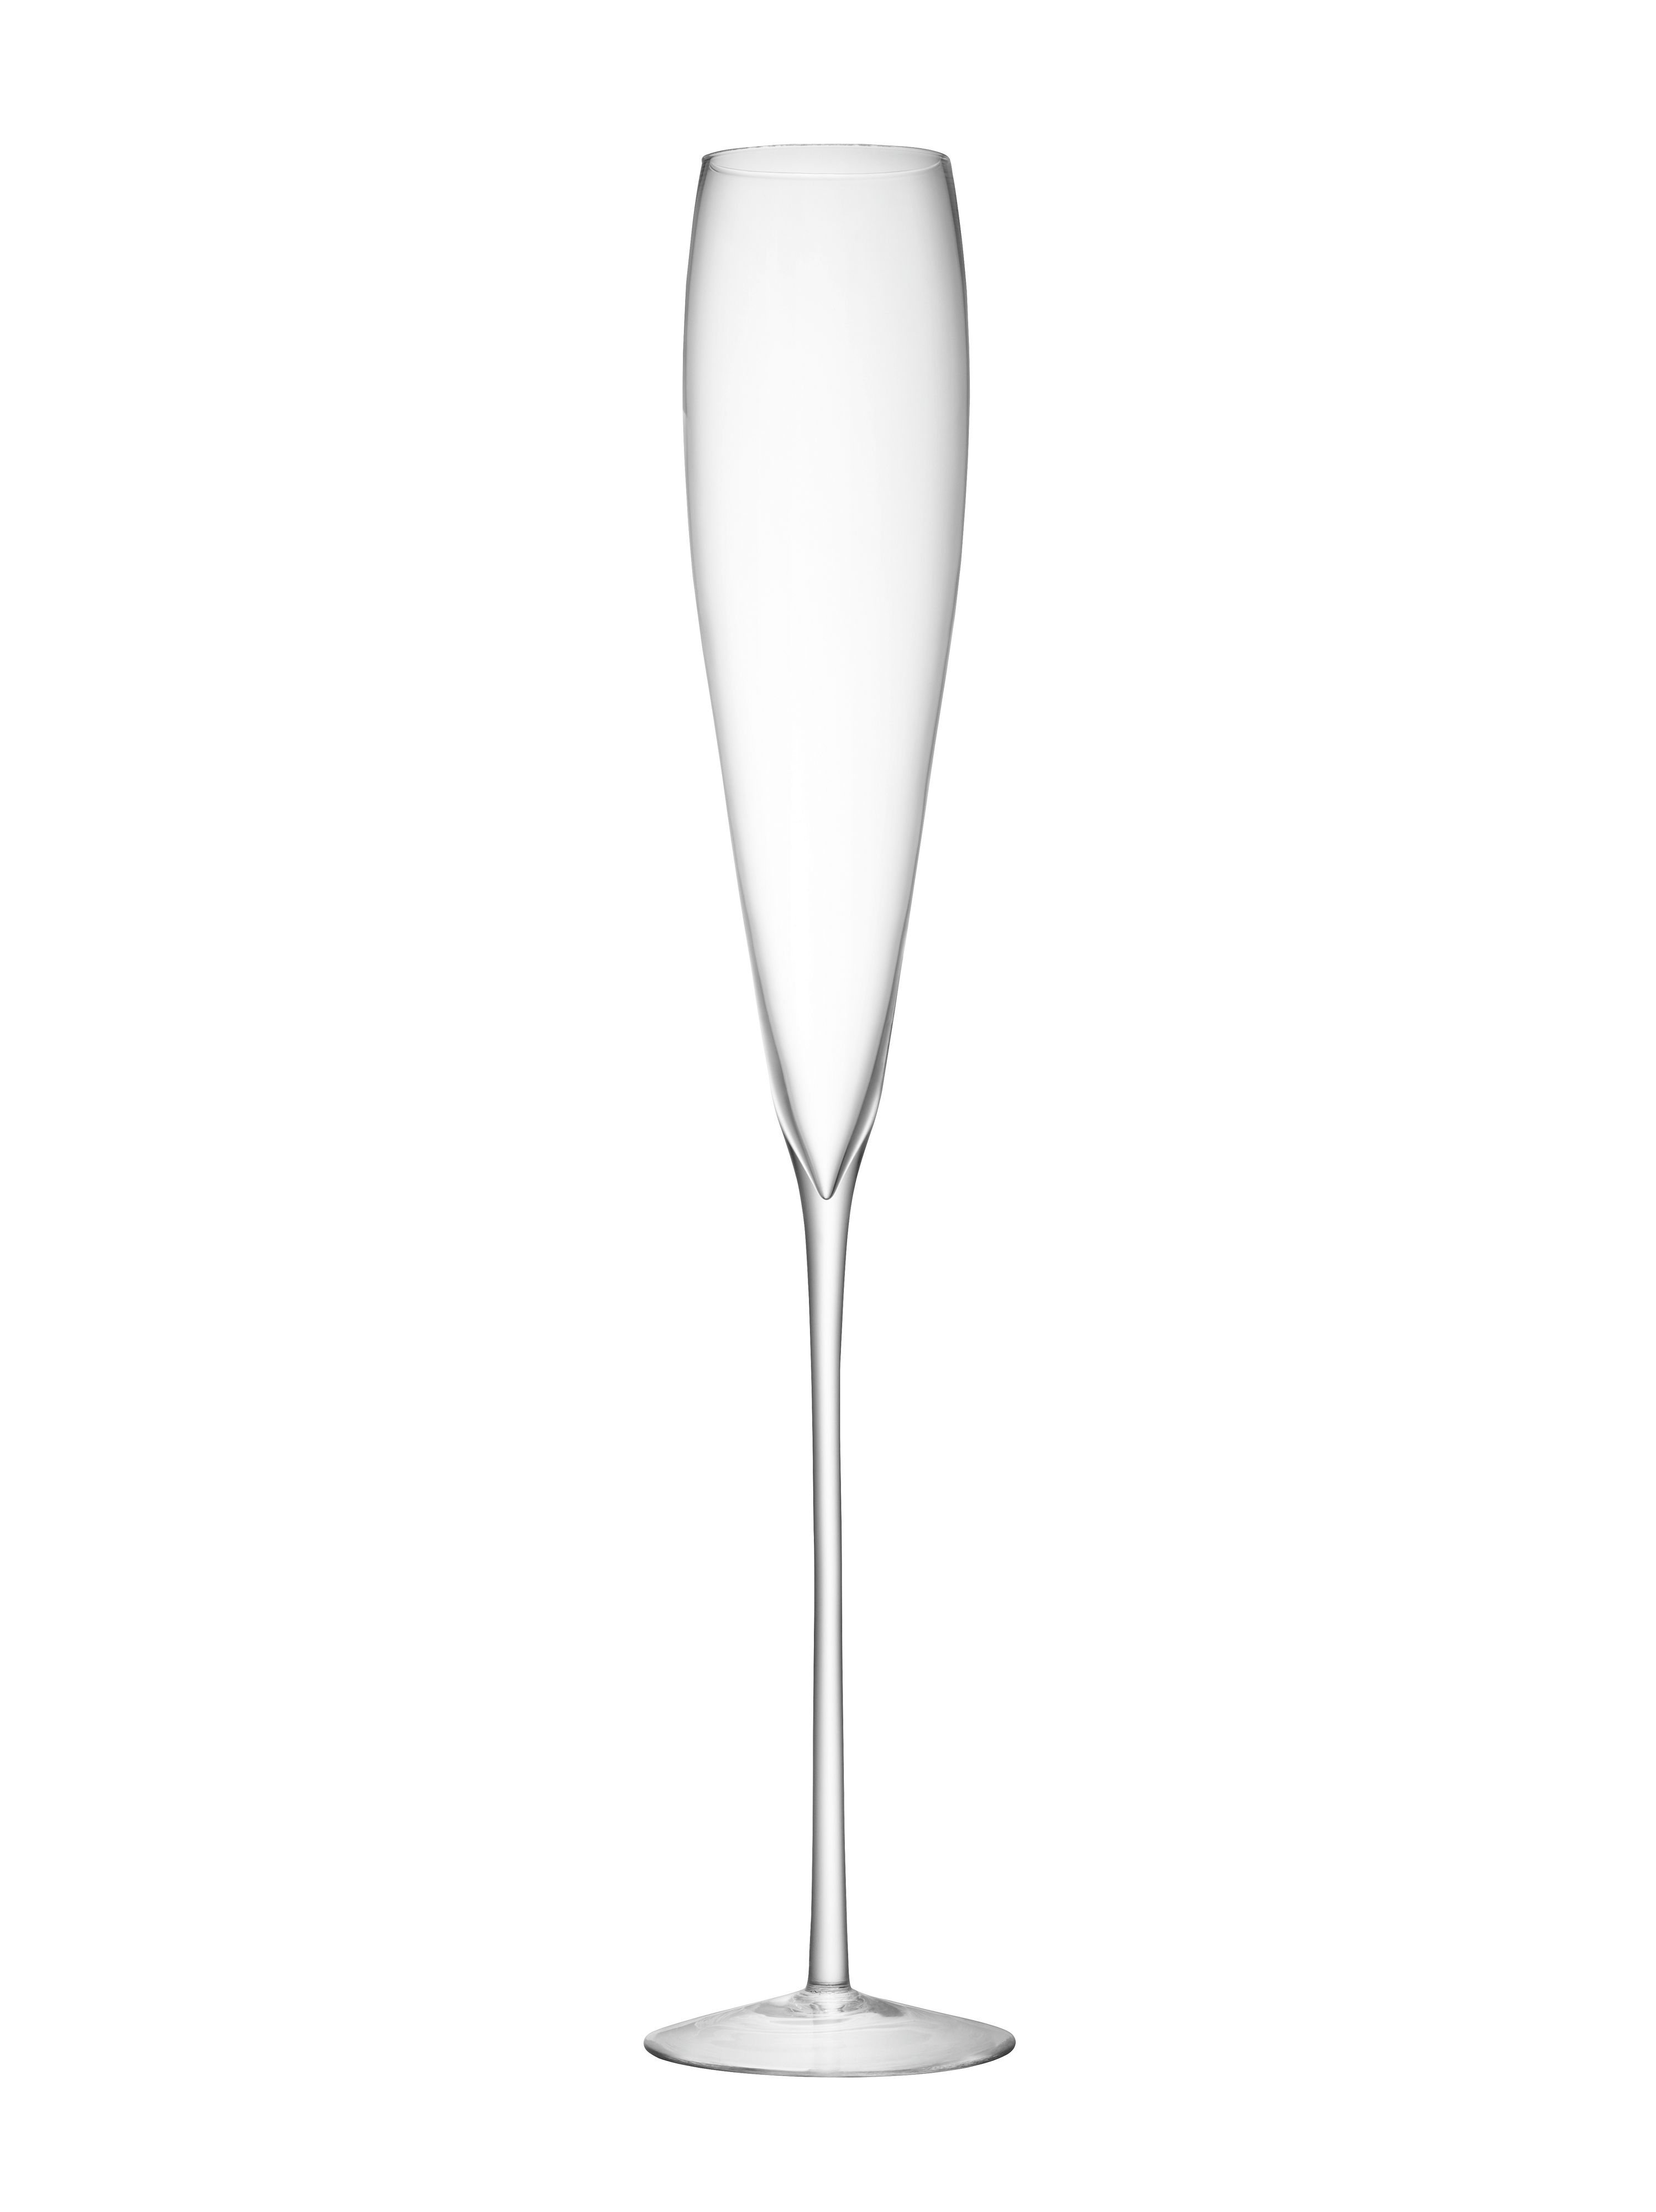 Maxa grand champagne flute 1.1m in clear